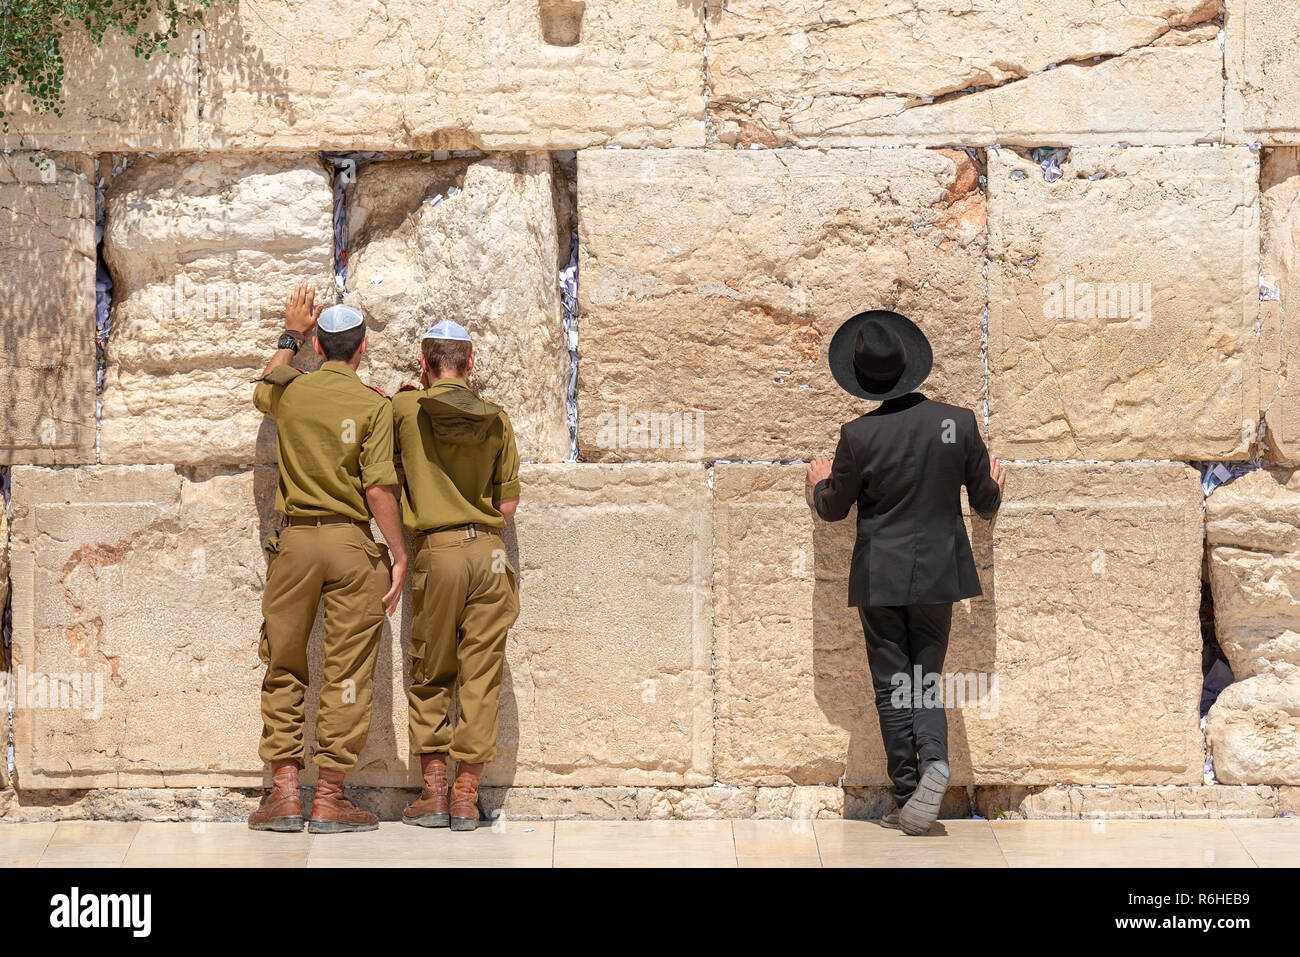 Jewish orthodox believers reading the Torah and praying facing the Western Wall, also known as Wailing Wall or Kotel in Old City in Jerusalem, Israel. - Stock Image